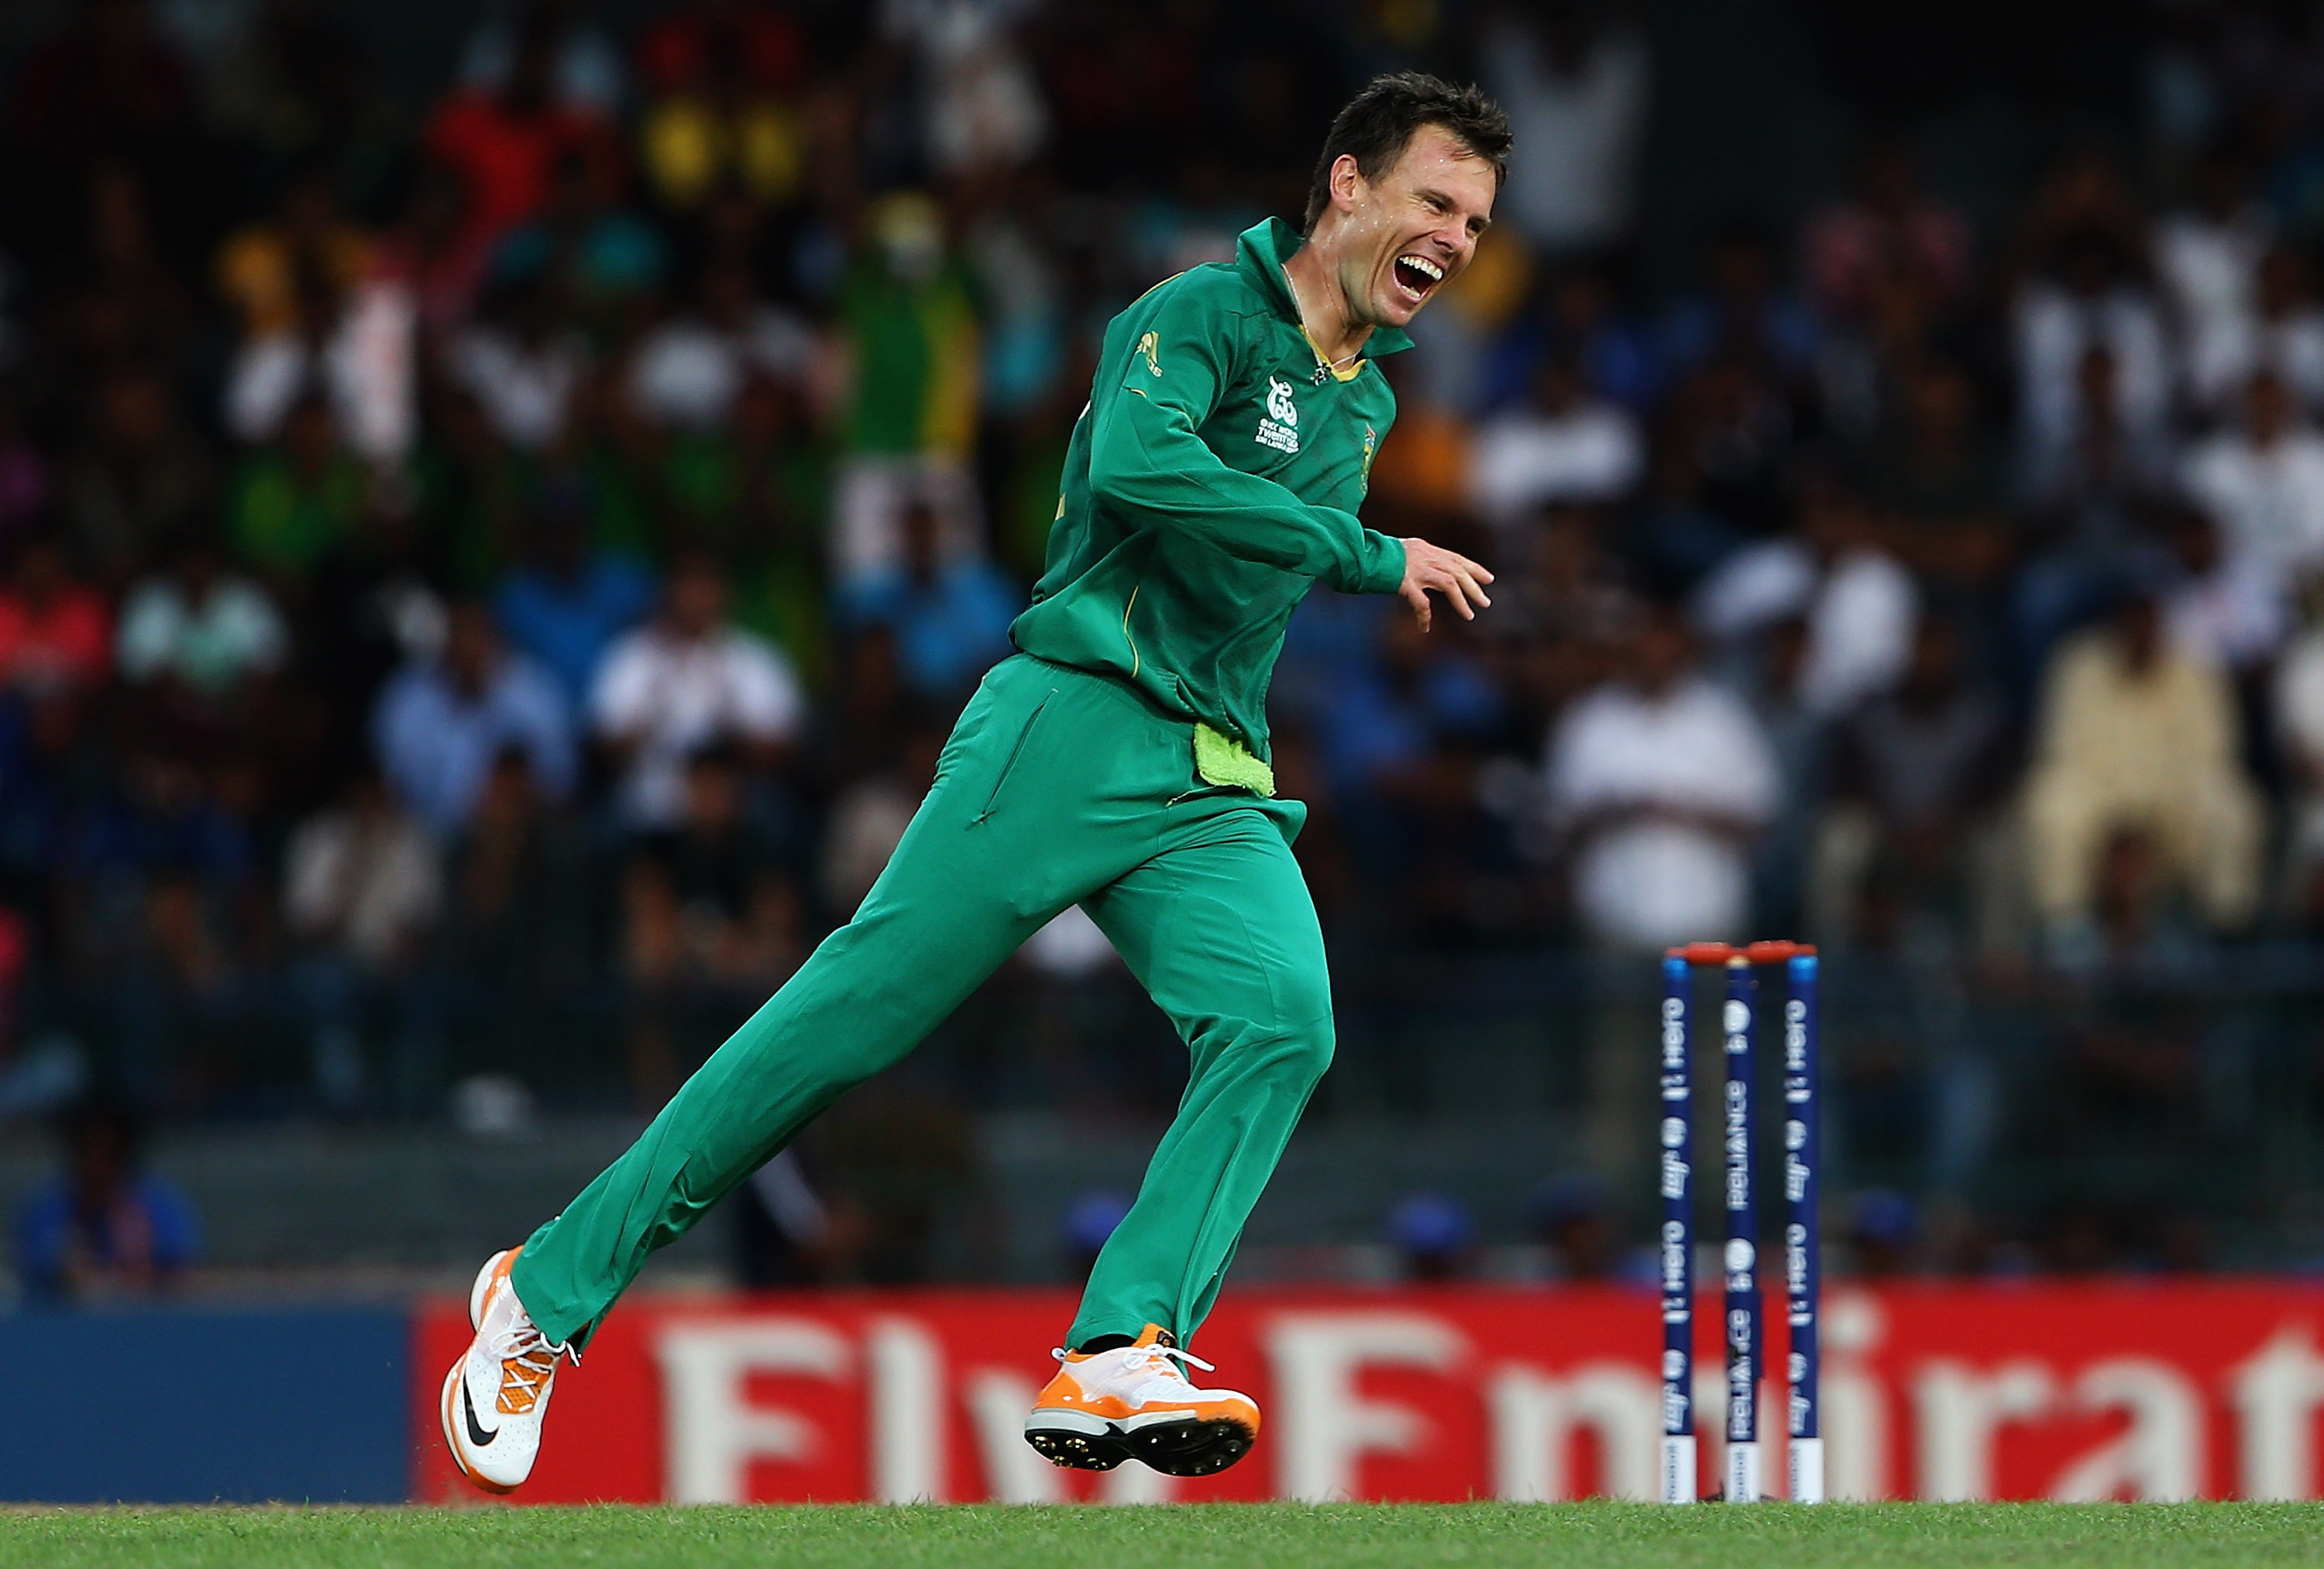 South Africa Johan Botha retires from all cricket